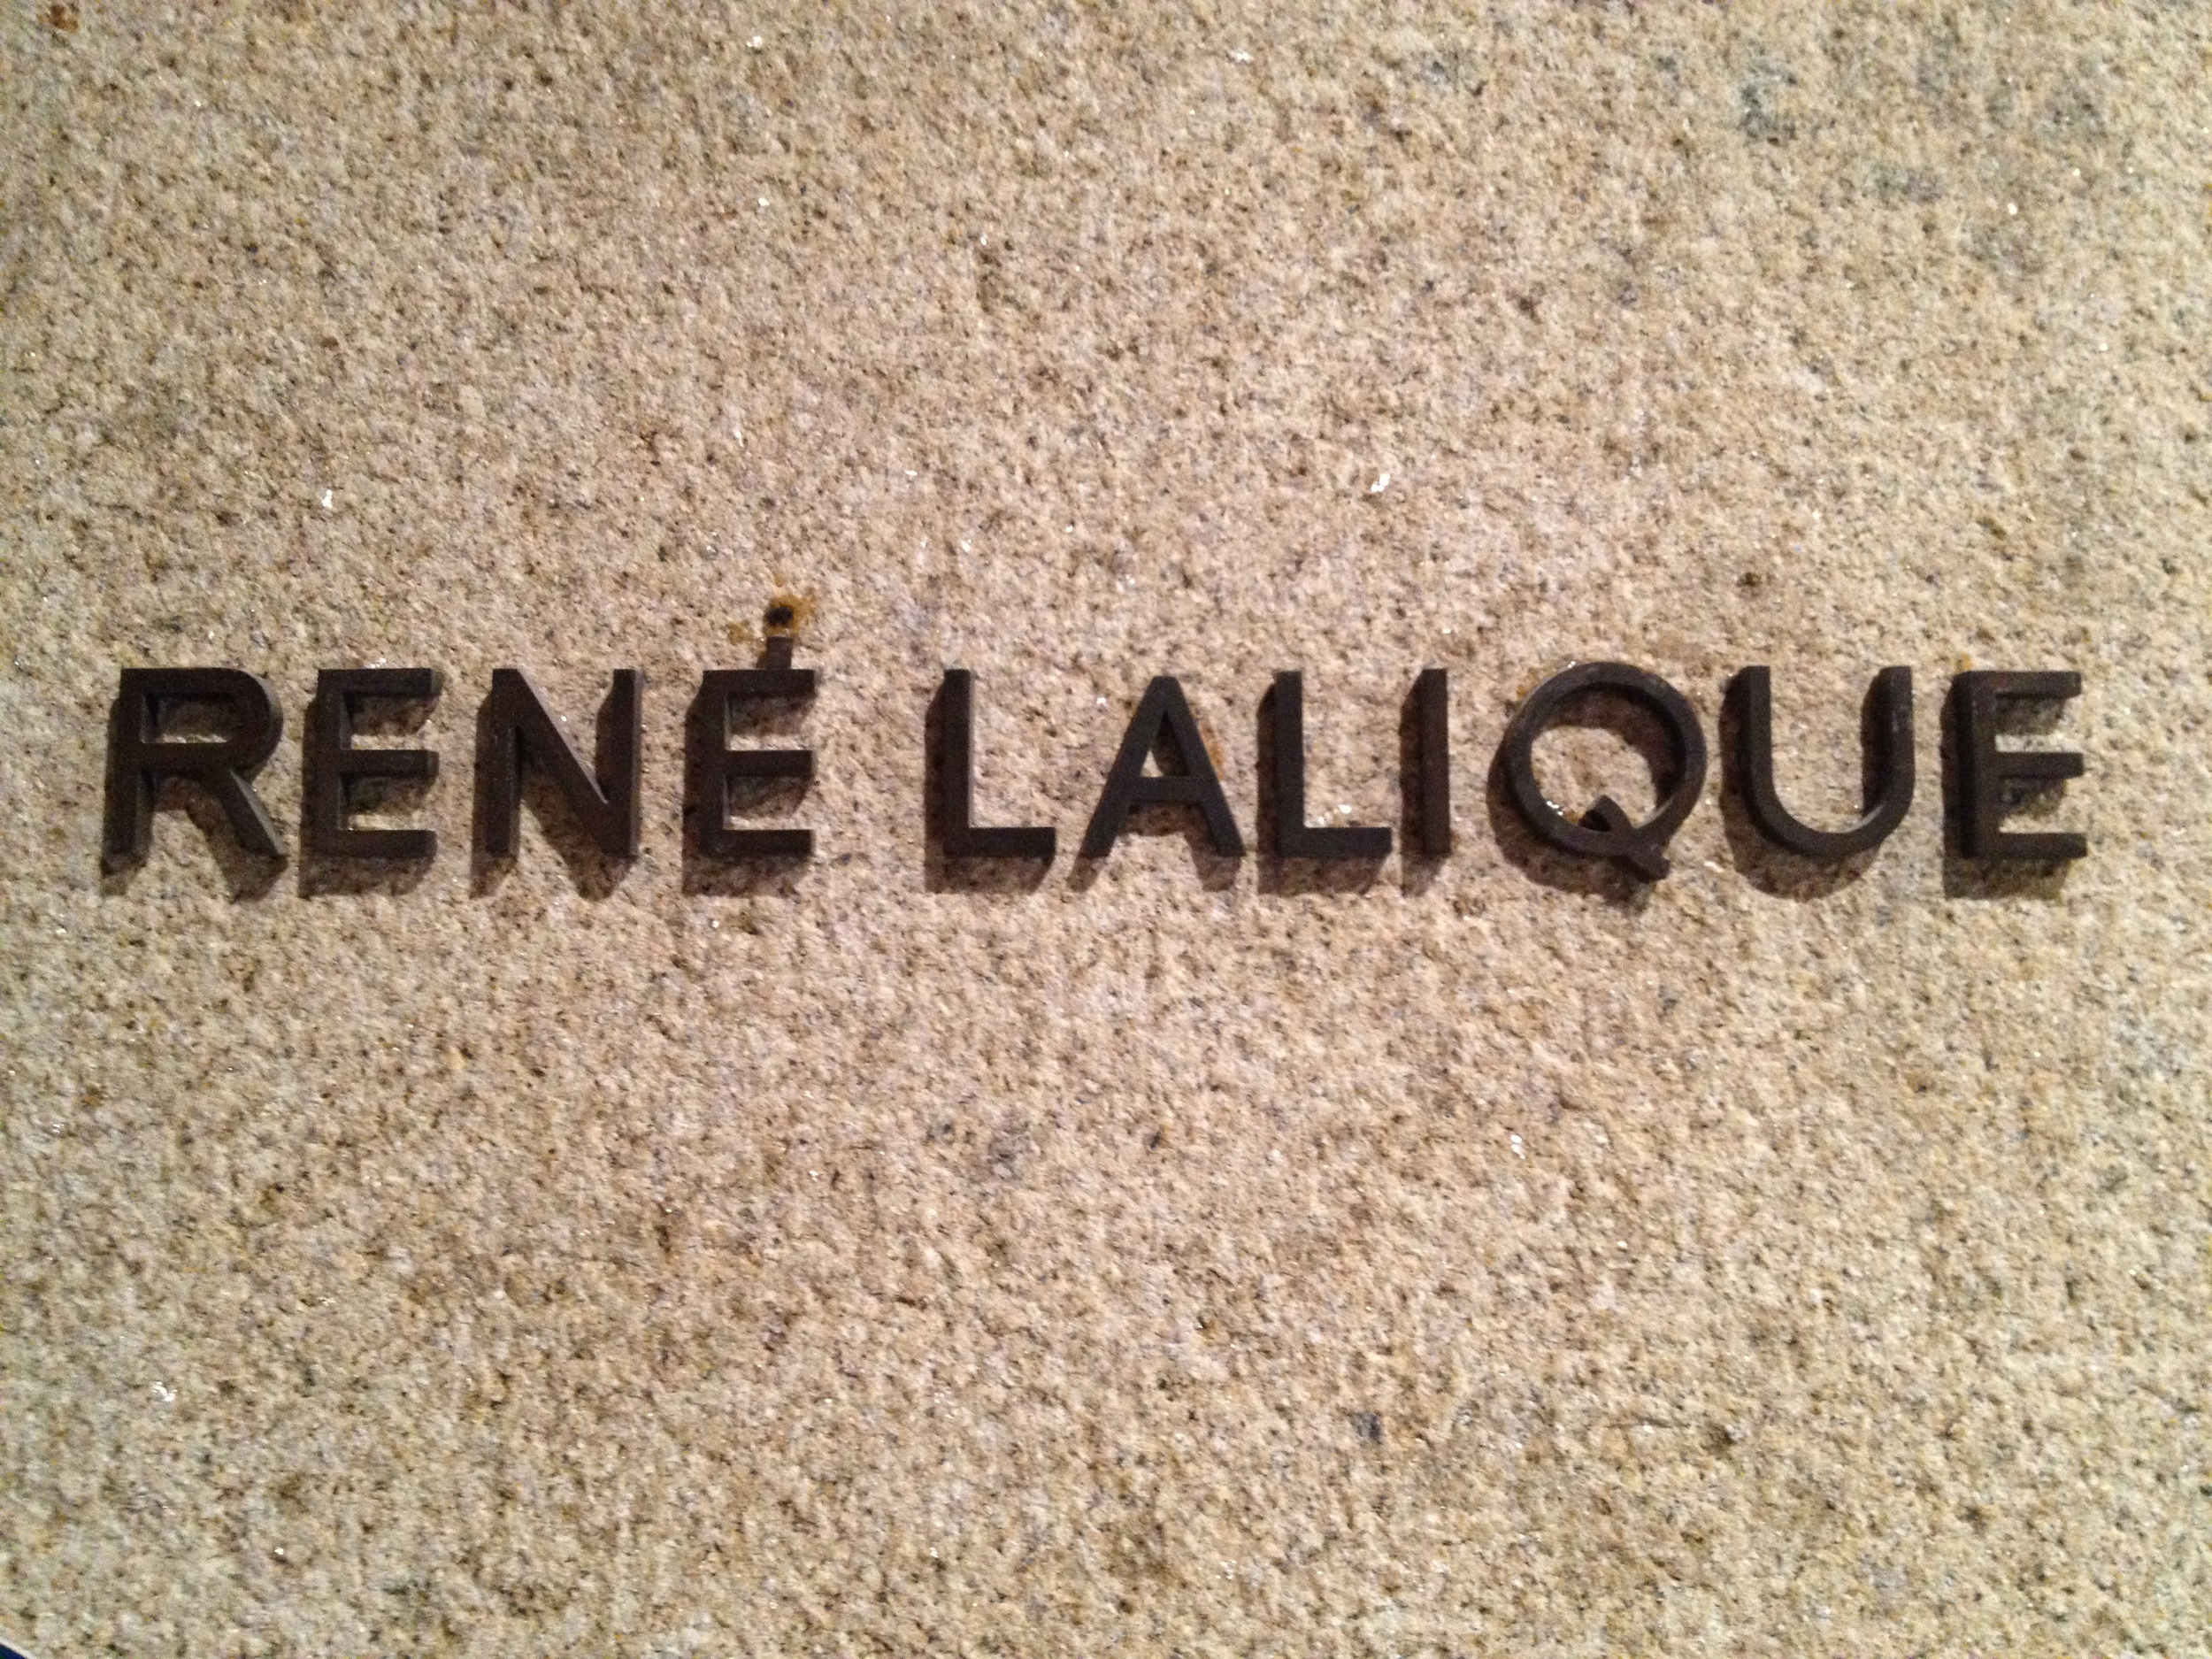 Rene Lalique Exhibition Room Plaque  Calouste Gulbenkian Museum, Lisbon, Portugal